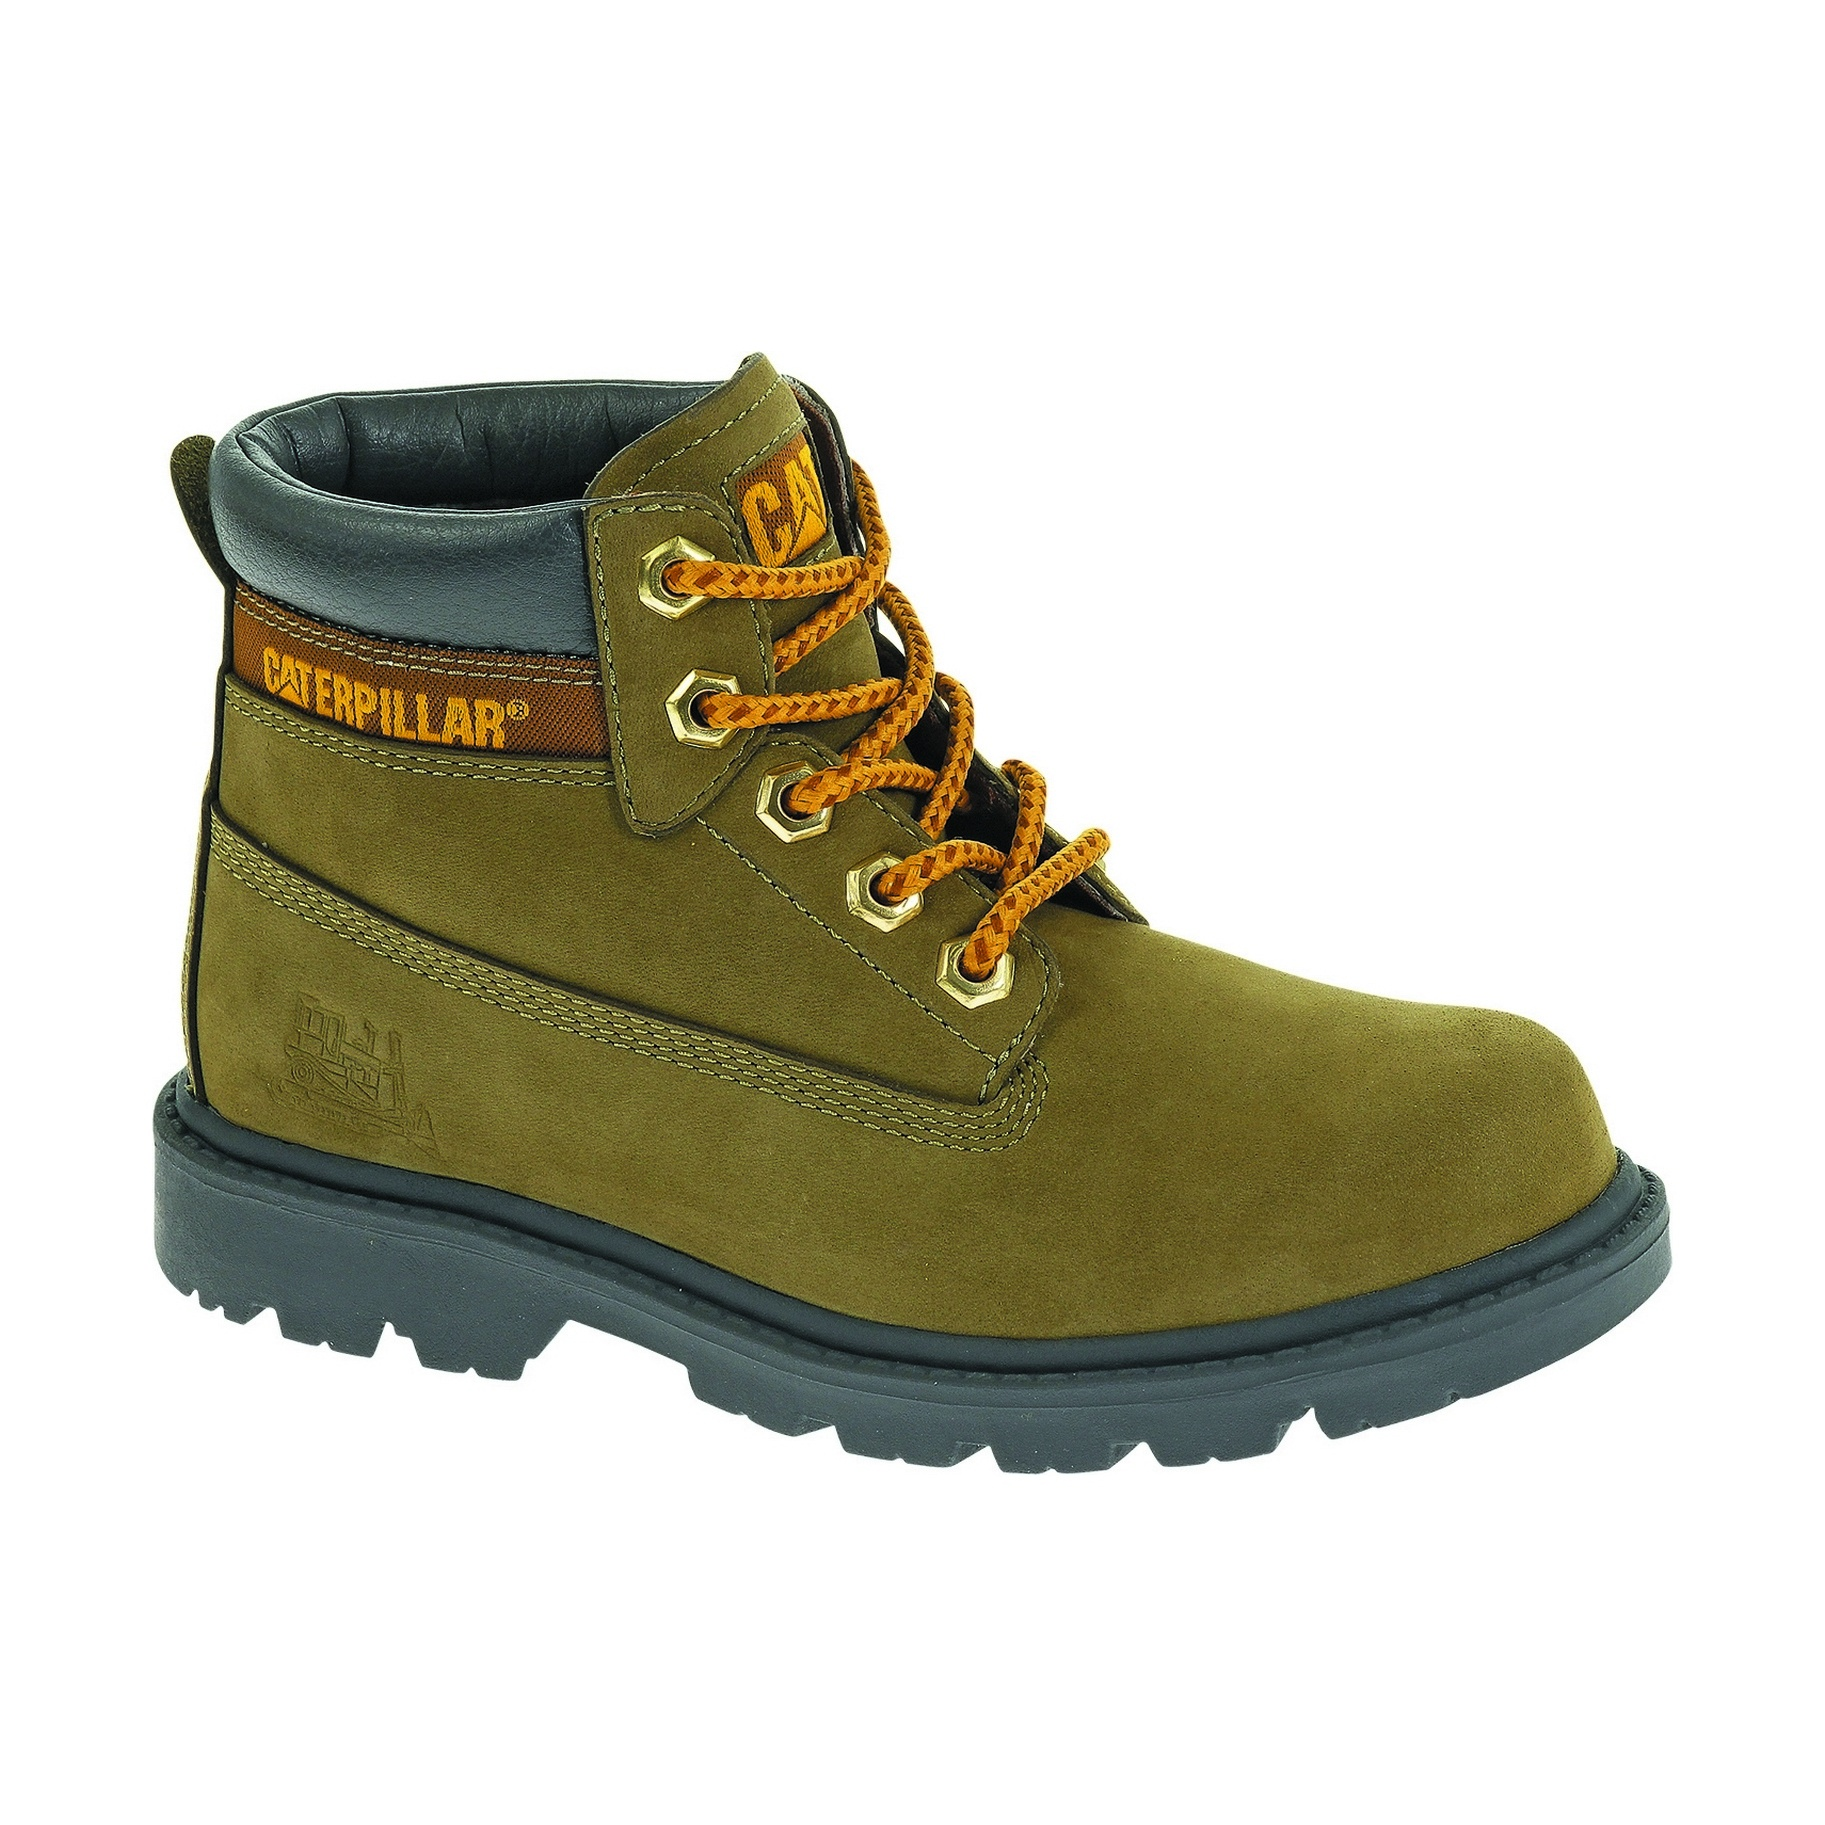 Browse Caterpillar Work Boots, Steel Toe Work Boots, Shoes & Workwear along with Casual Shoes & Apparel for Men and Women. Browse Online at dexterminduwi.ga